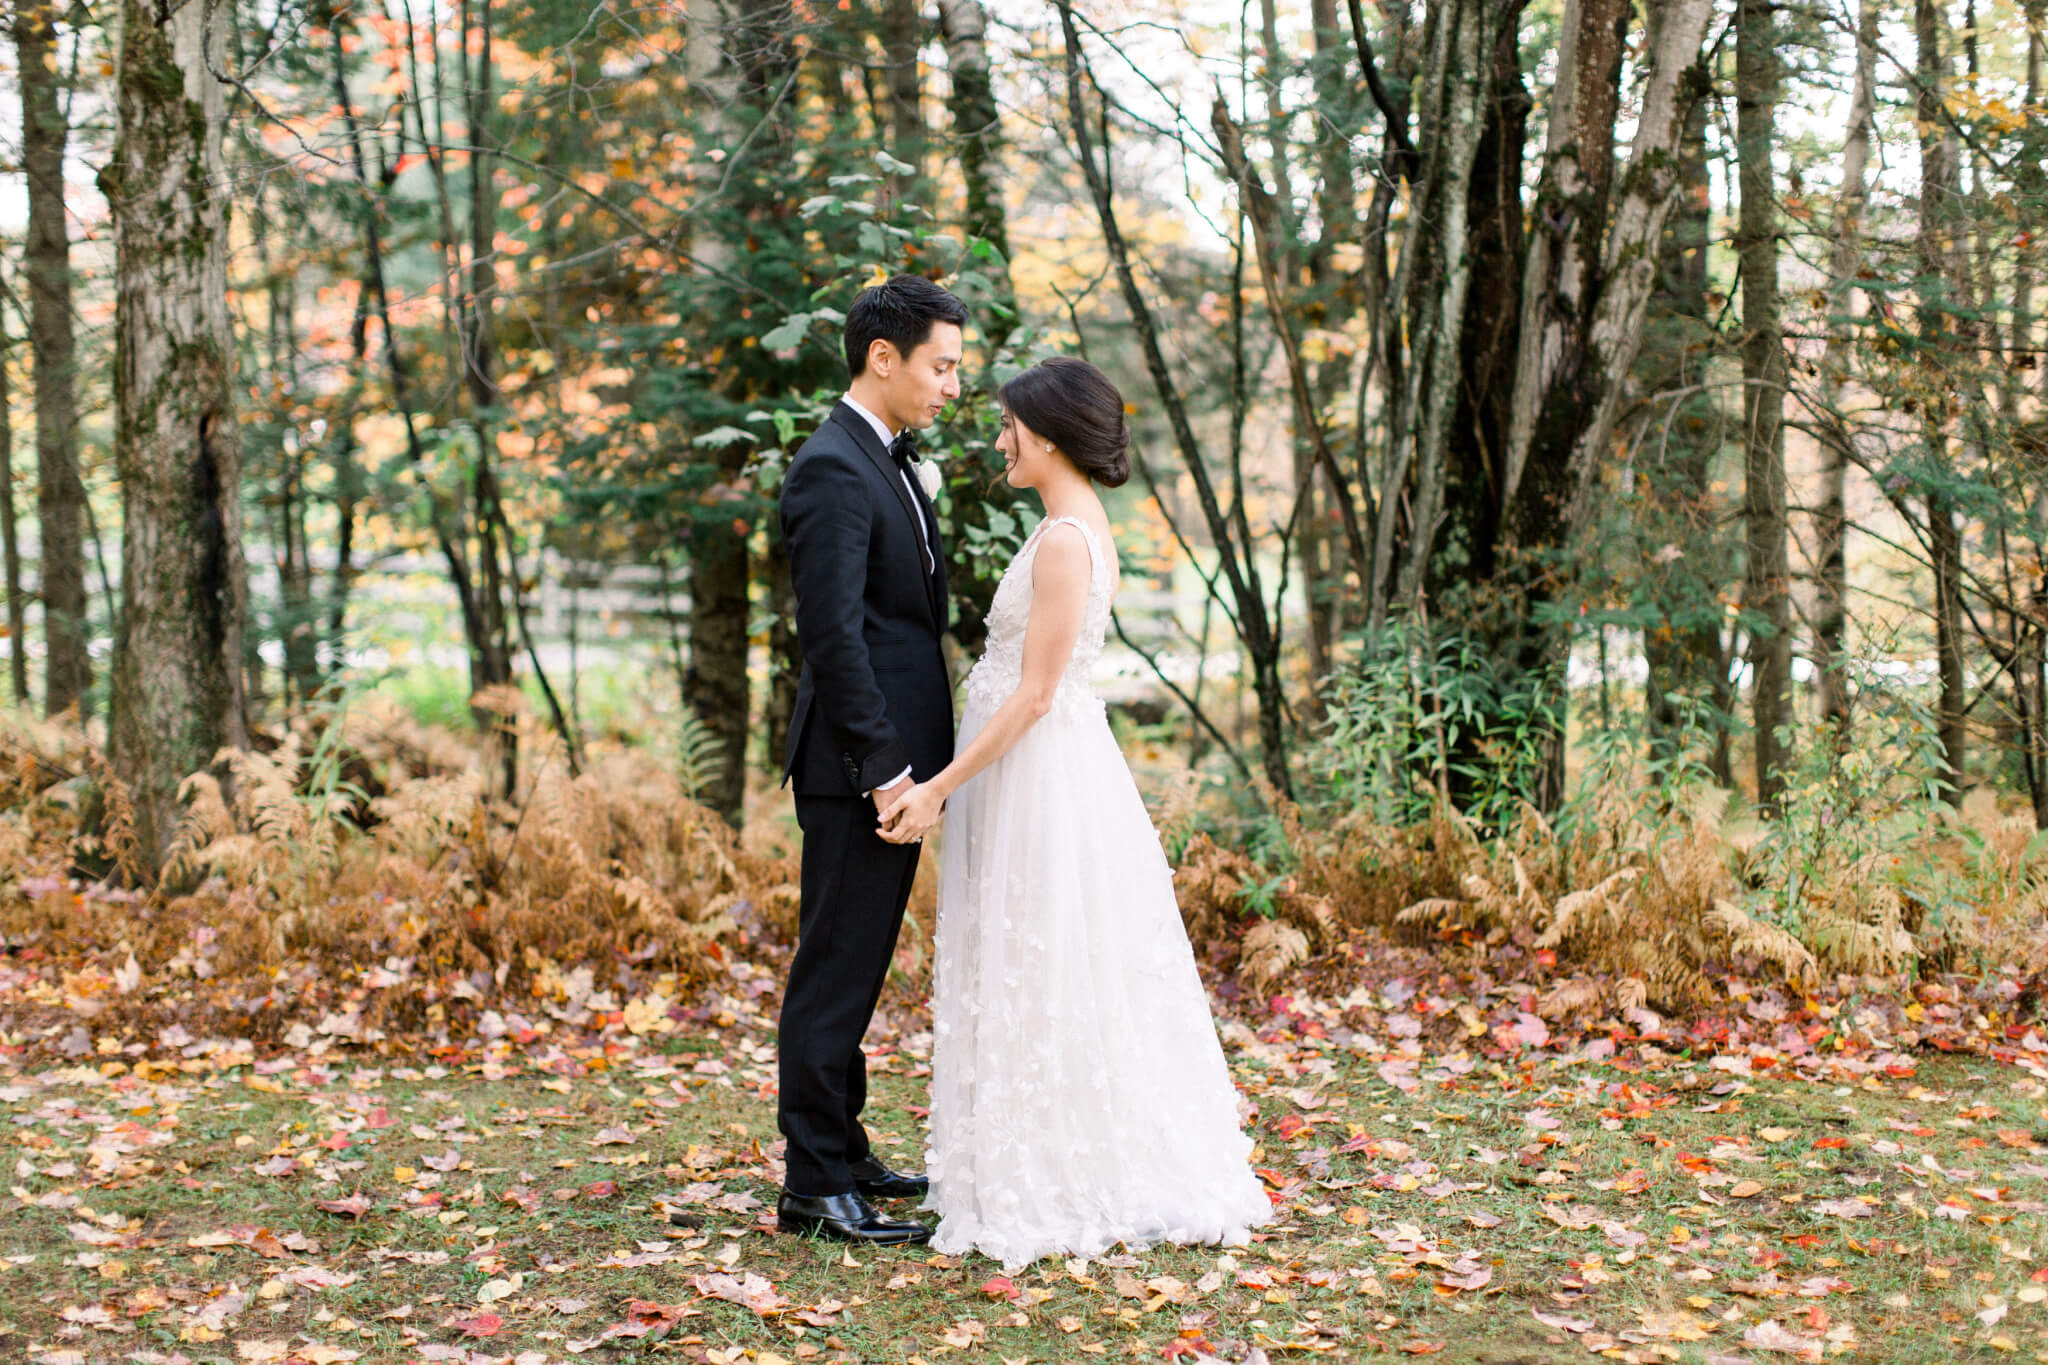 bride and groom outdoors in fall. leaves and greenery in background.